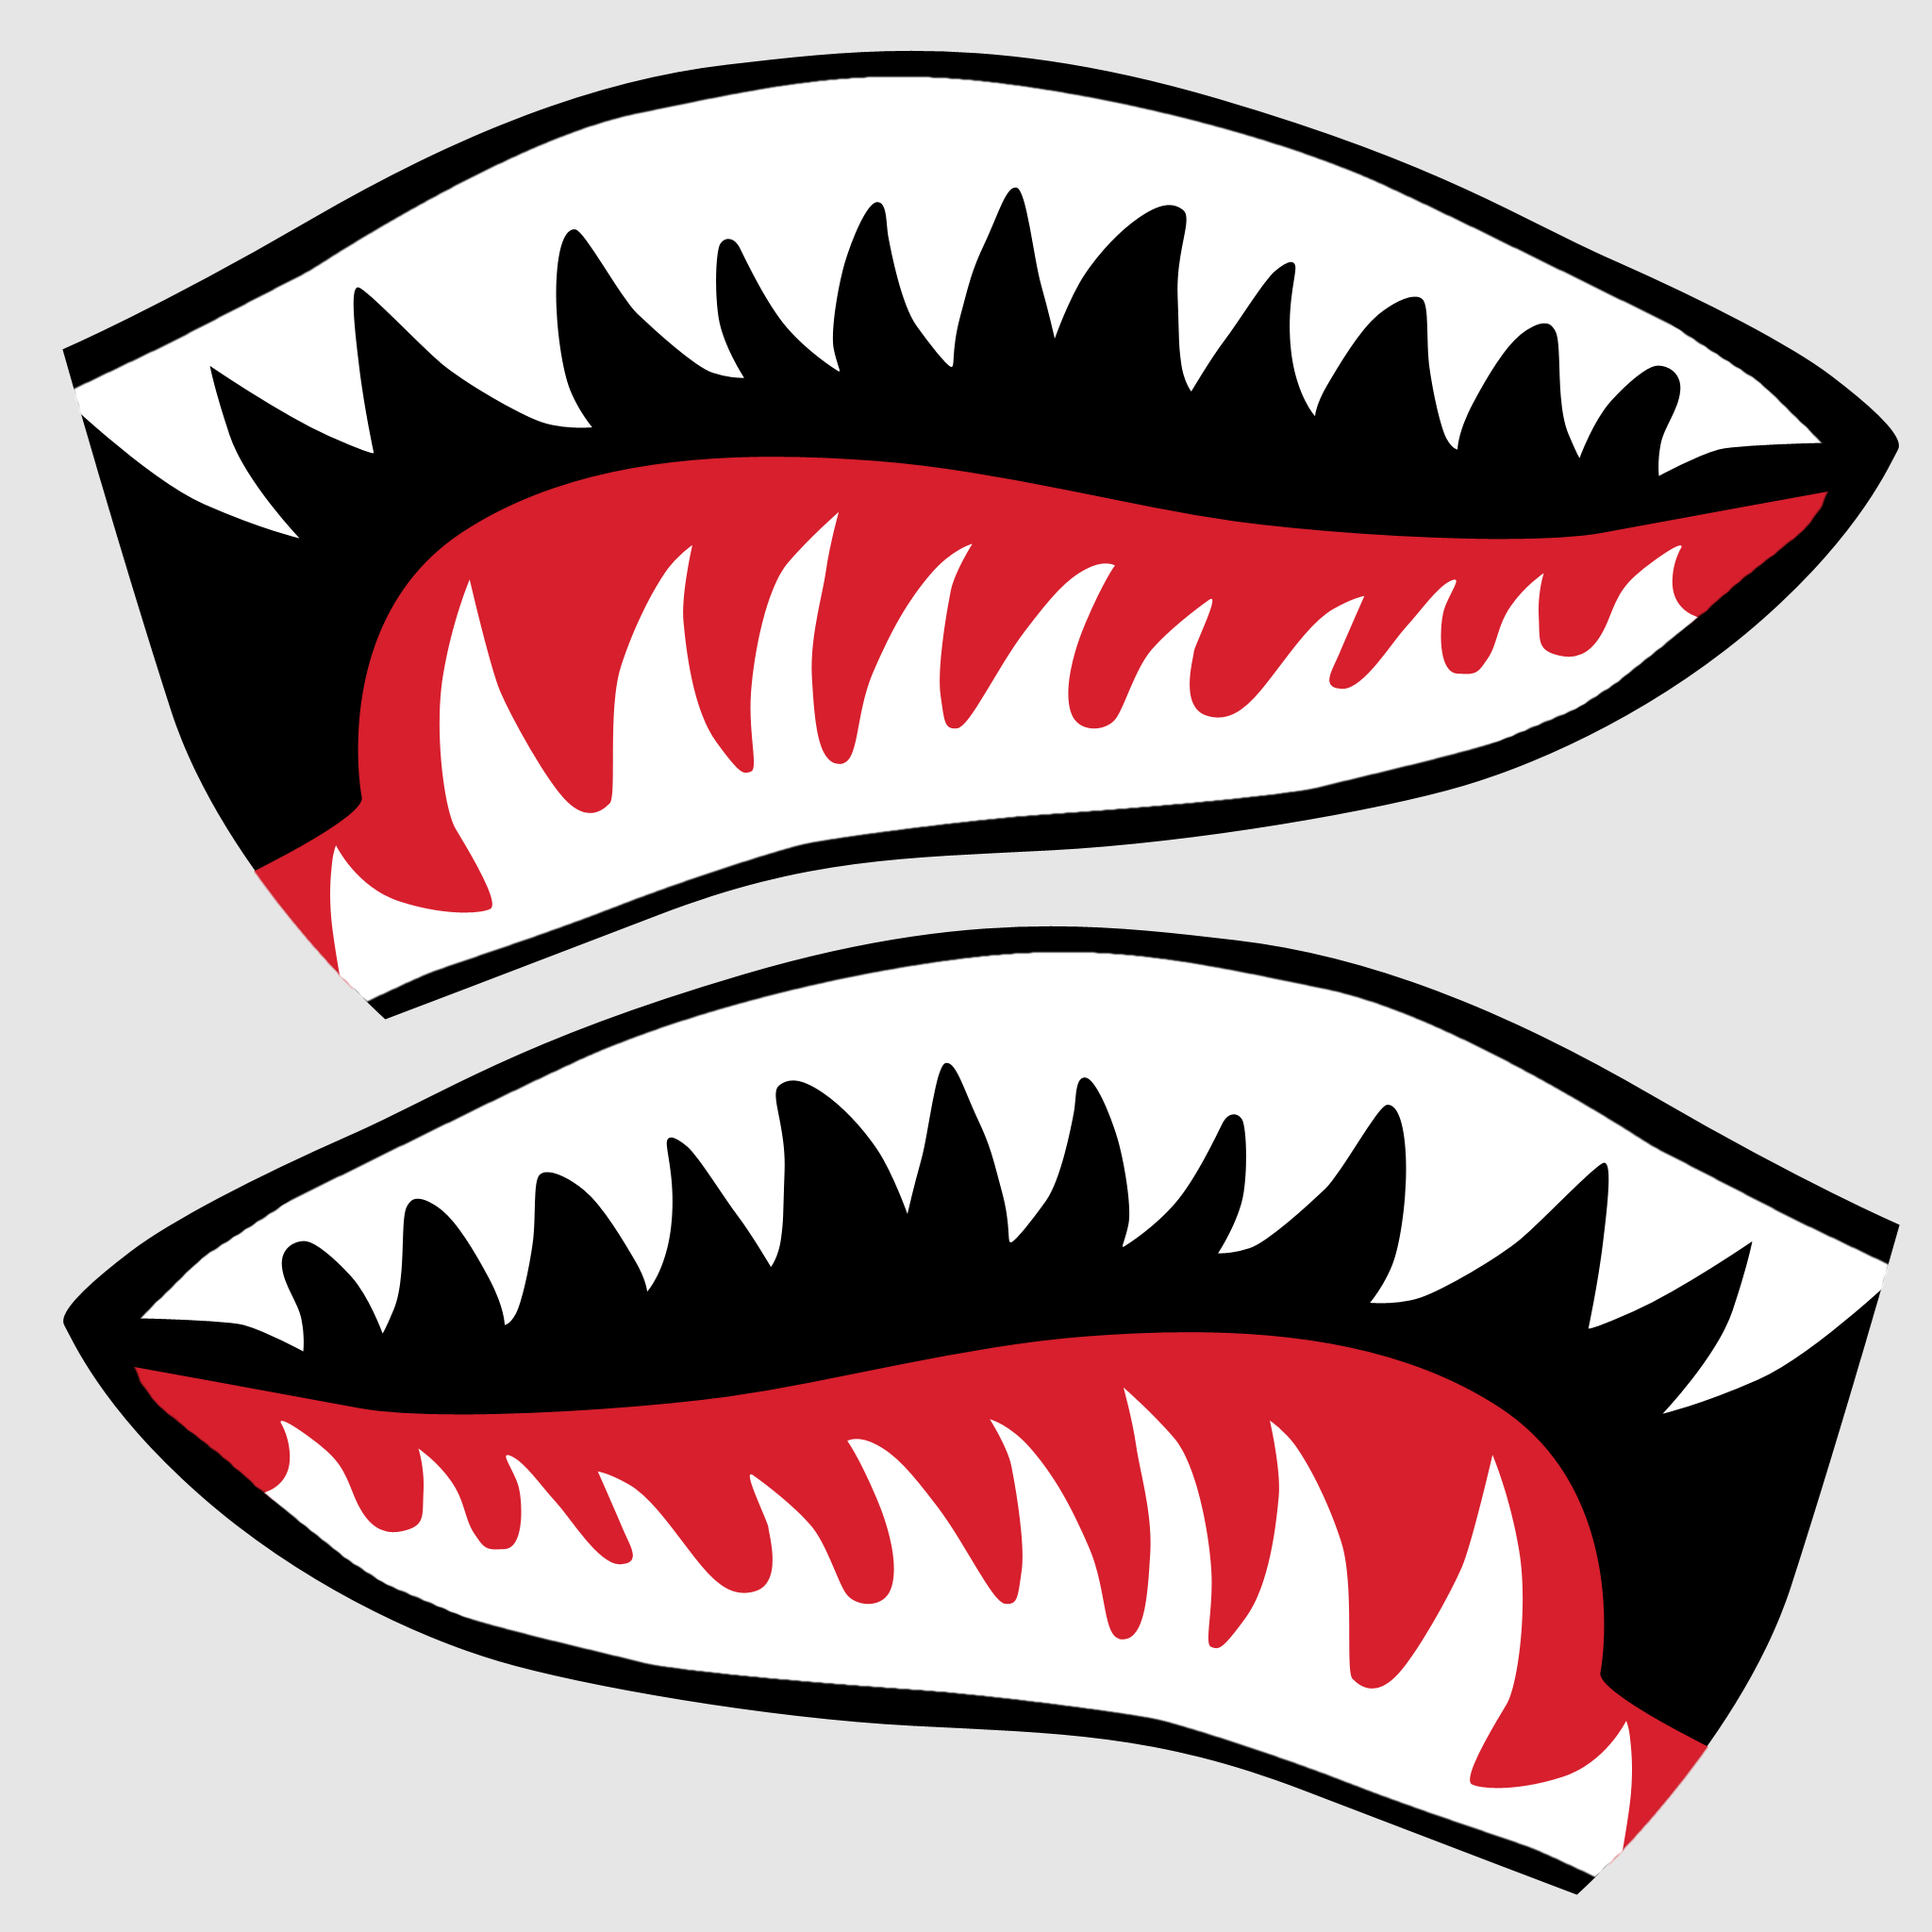 Aircraft Shark Teeth.png